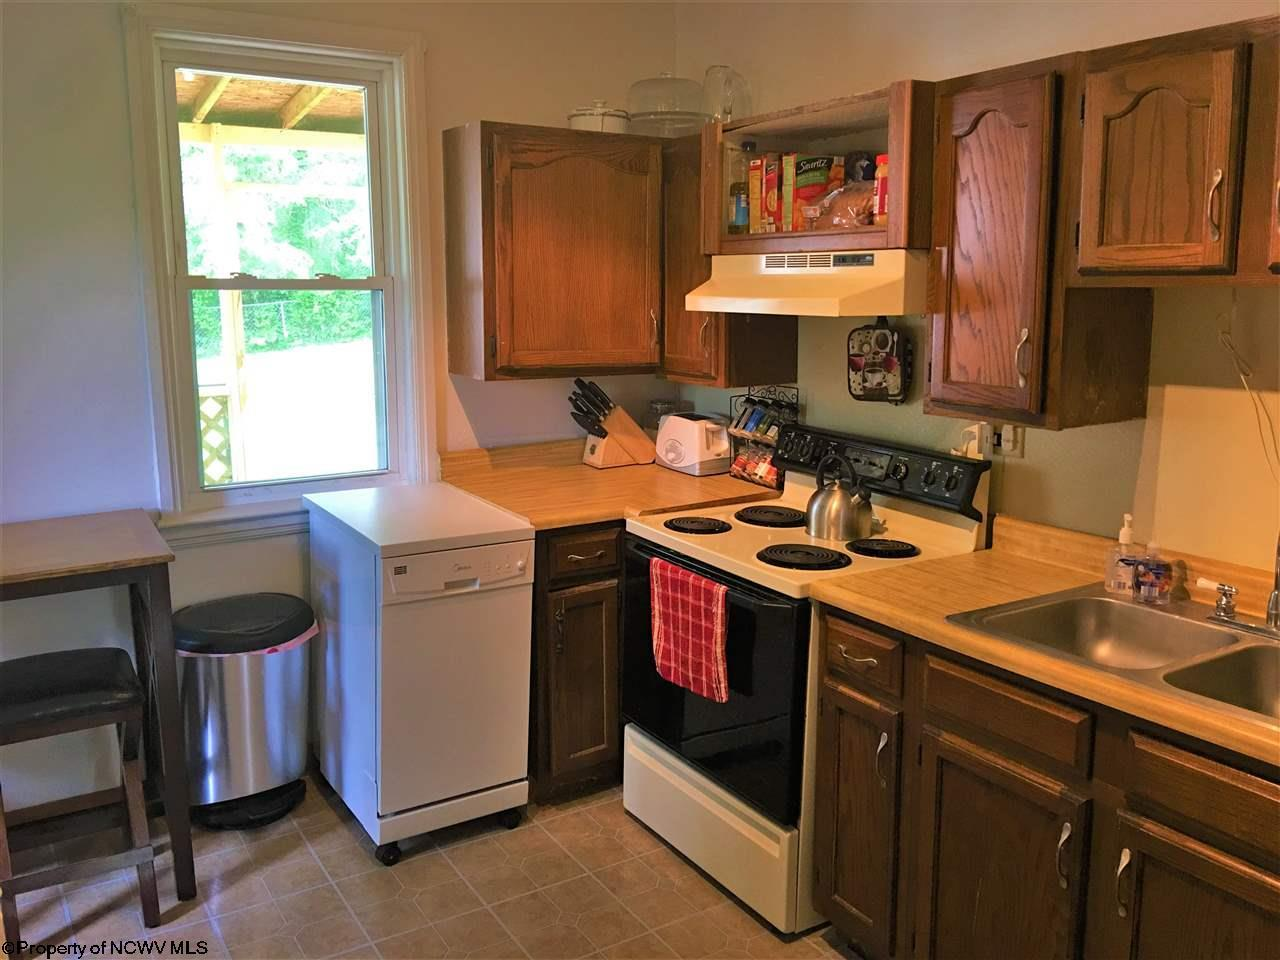 2 bed / 1 bath Home in Westover for $99,000